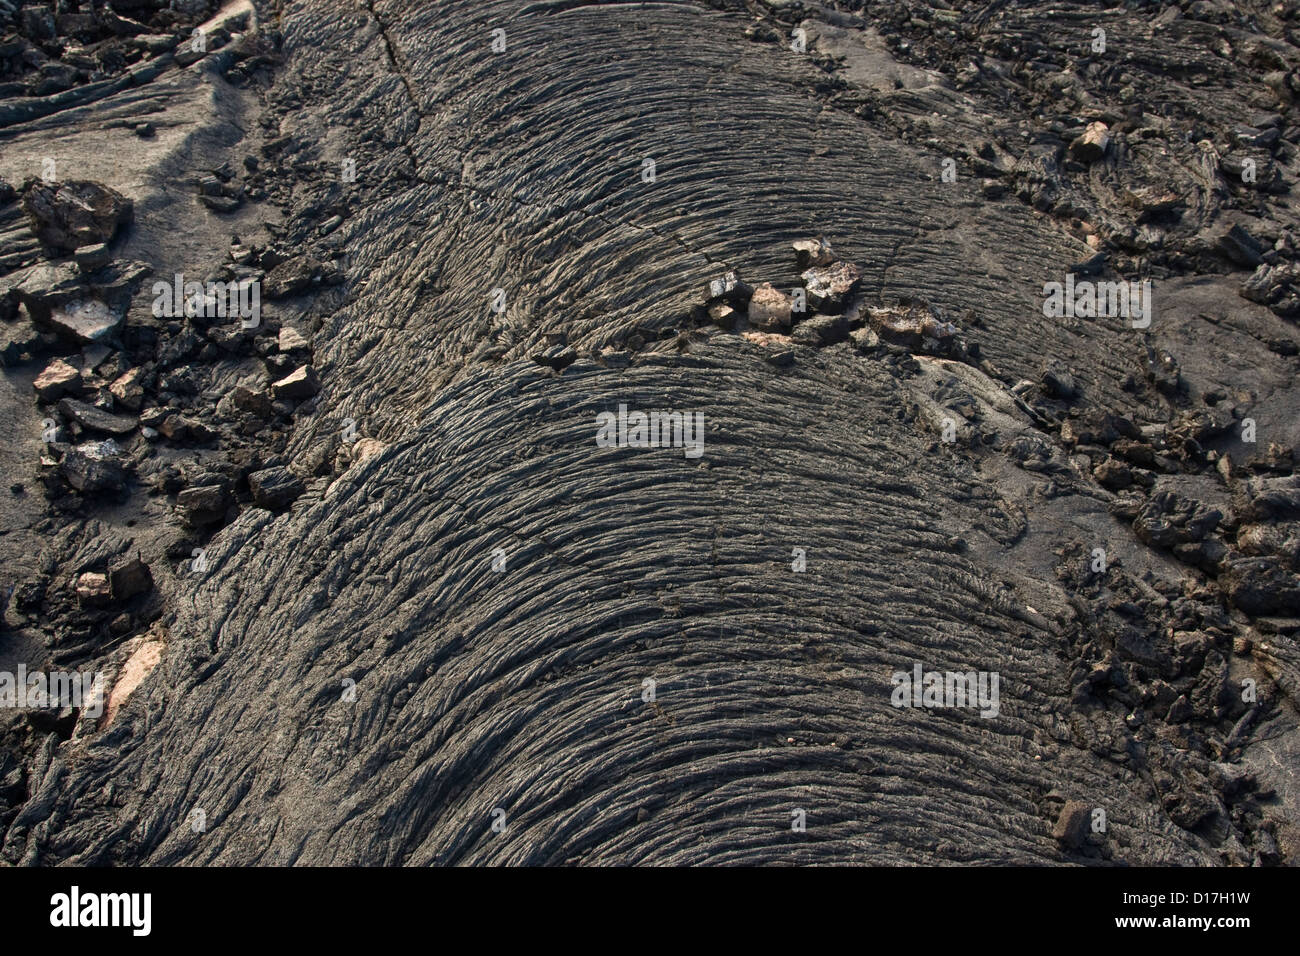 Pahoehoe lava on La Palma - Stock Image